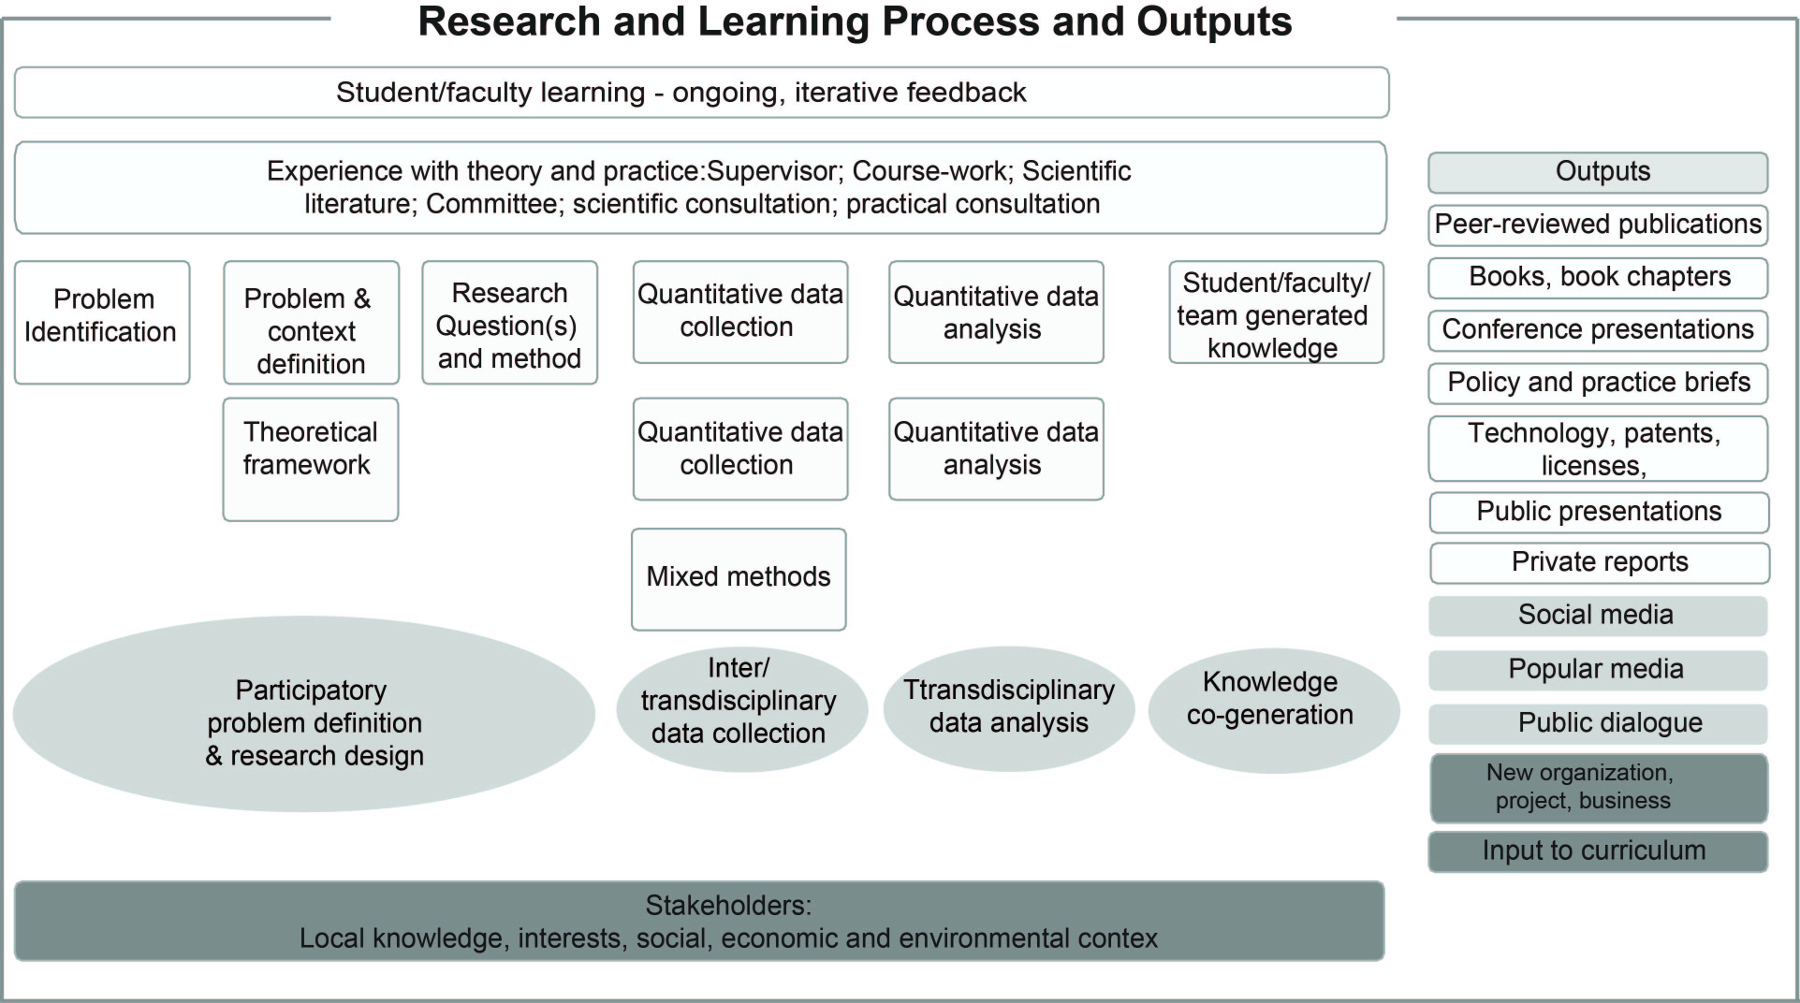 Figure 3. RRU Research and Learning Process.